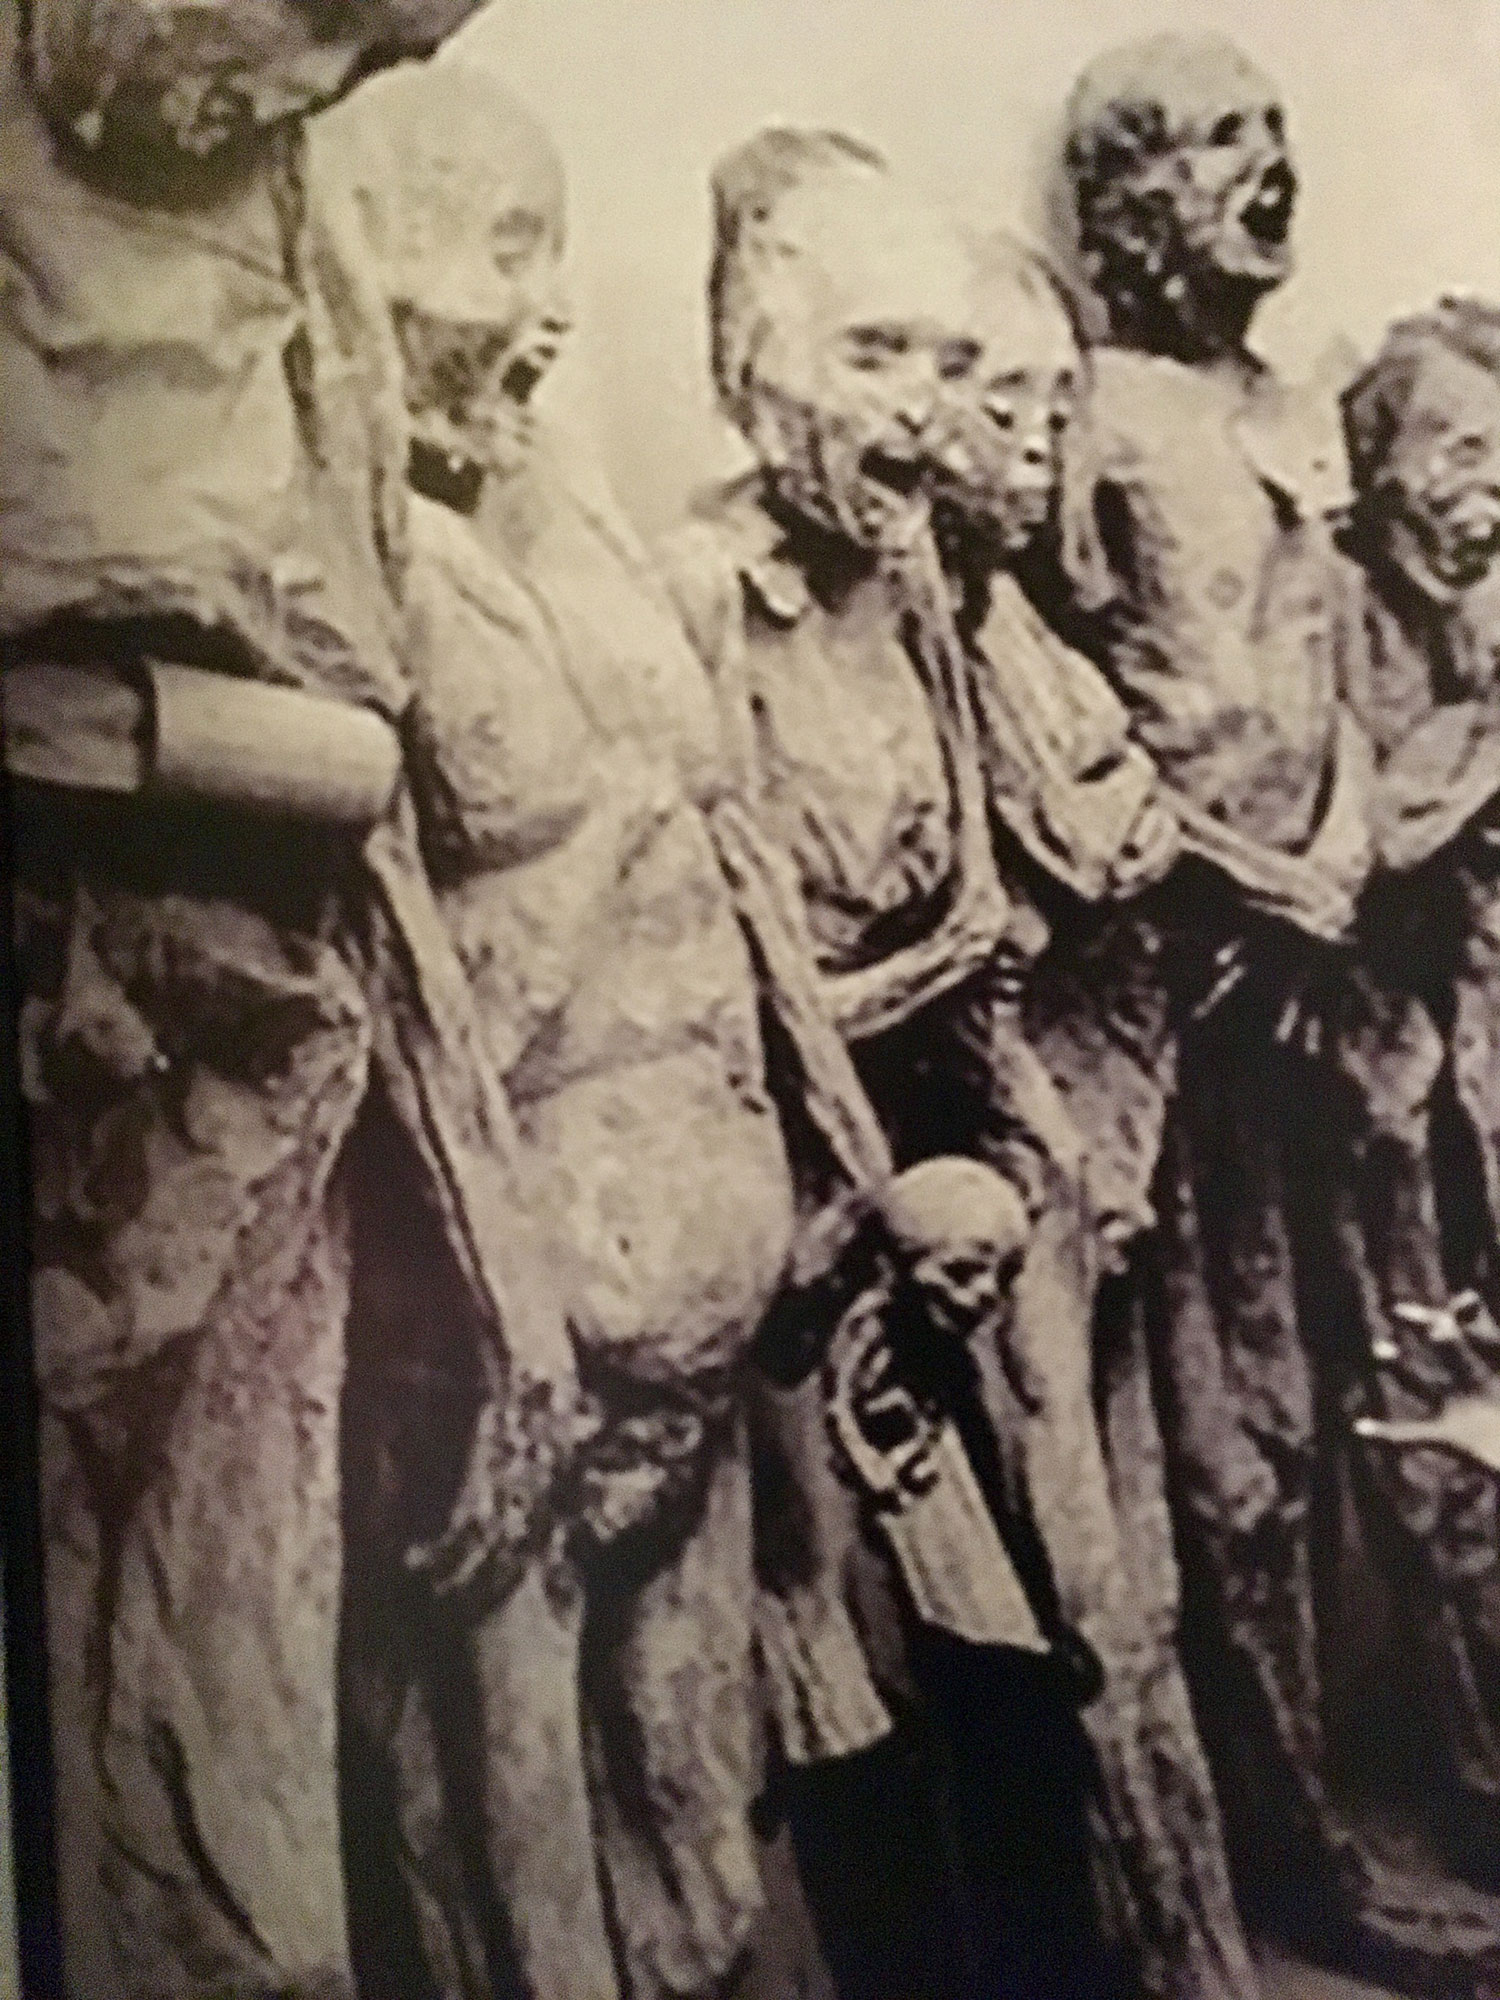 Guanajuato mummies, a photo from the Museum.